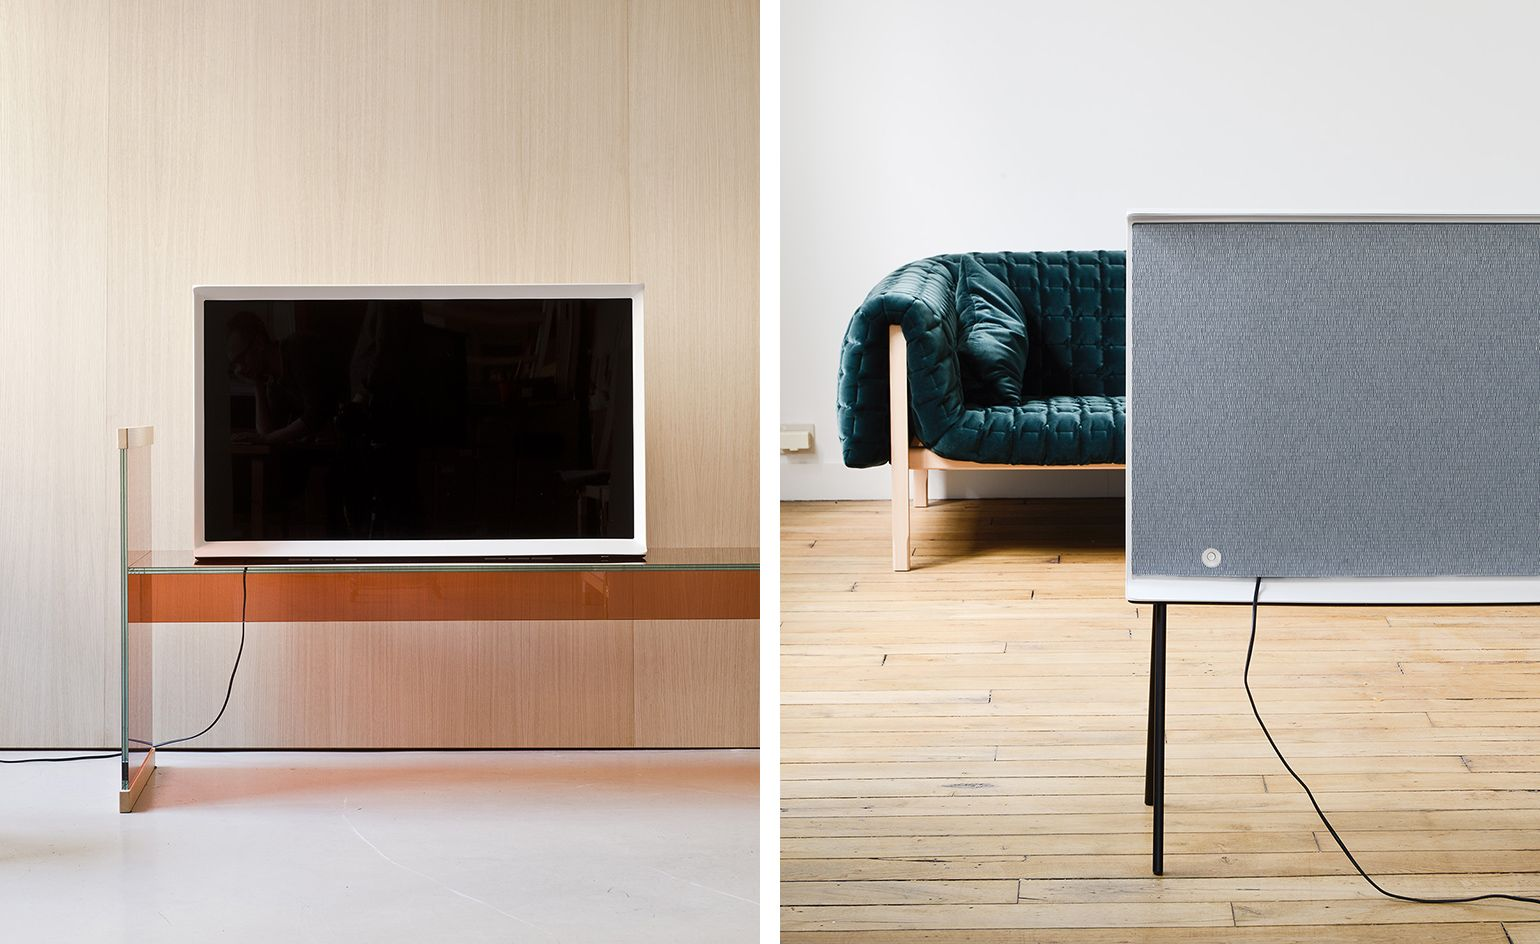 Serif: the Bouroullec brothers team up with Samsung to reinvent TV Full HD 4K